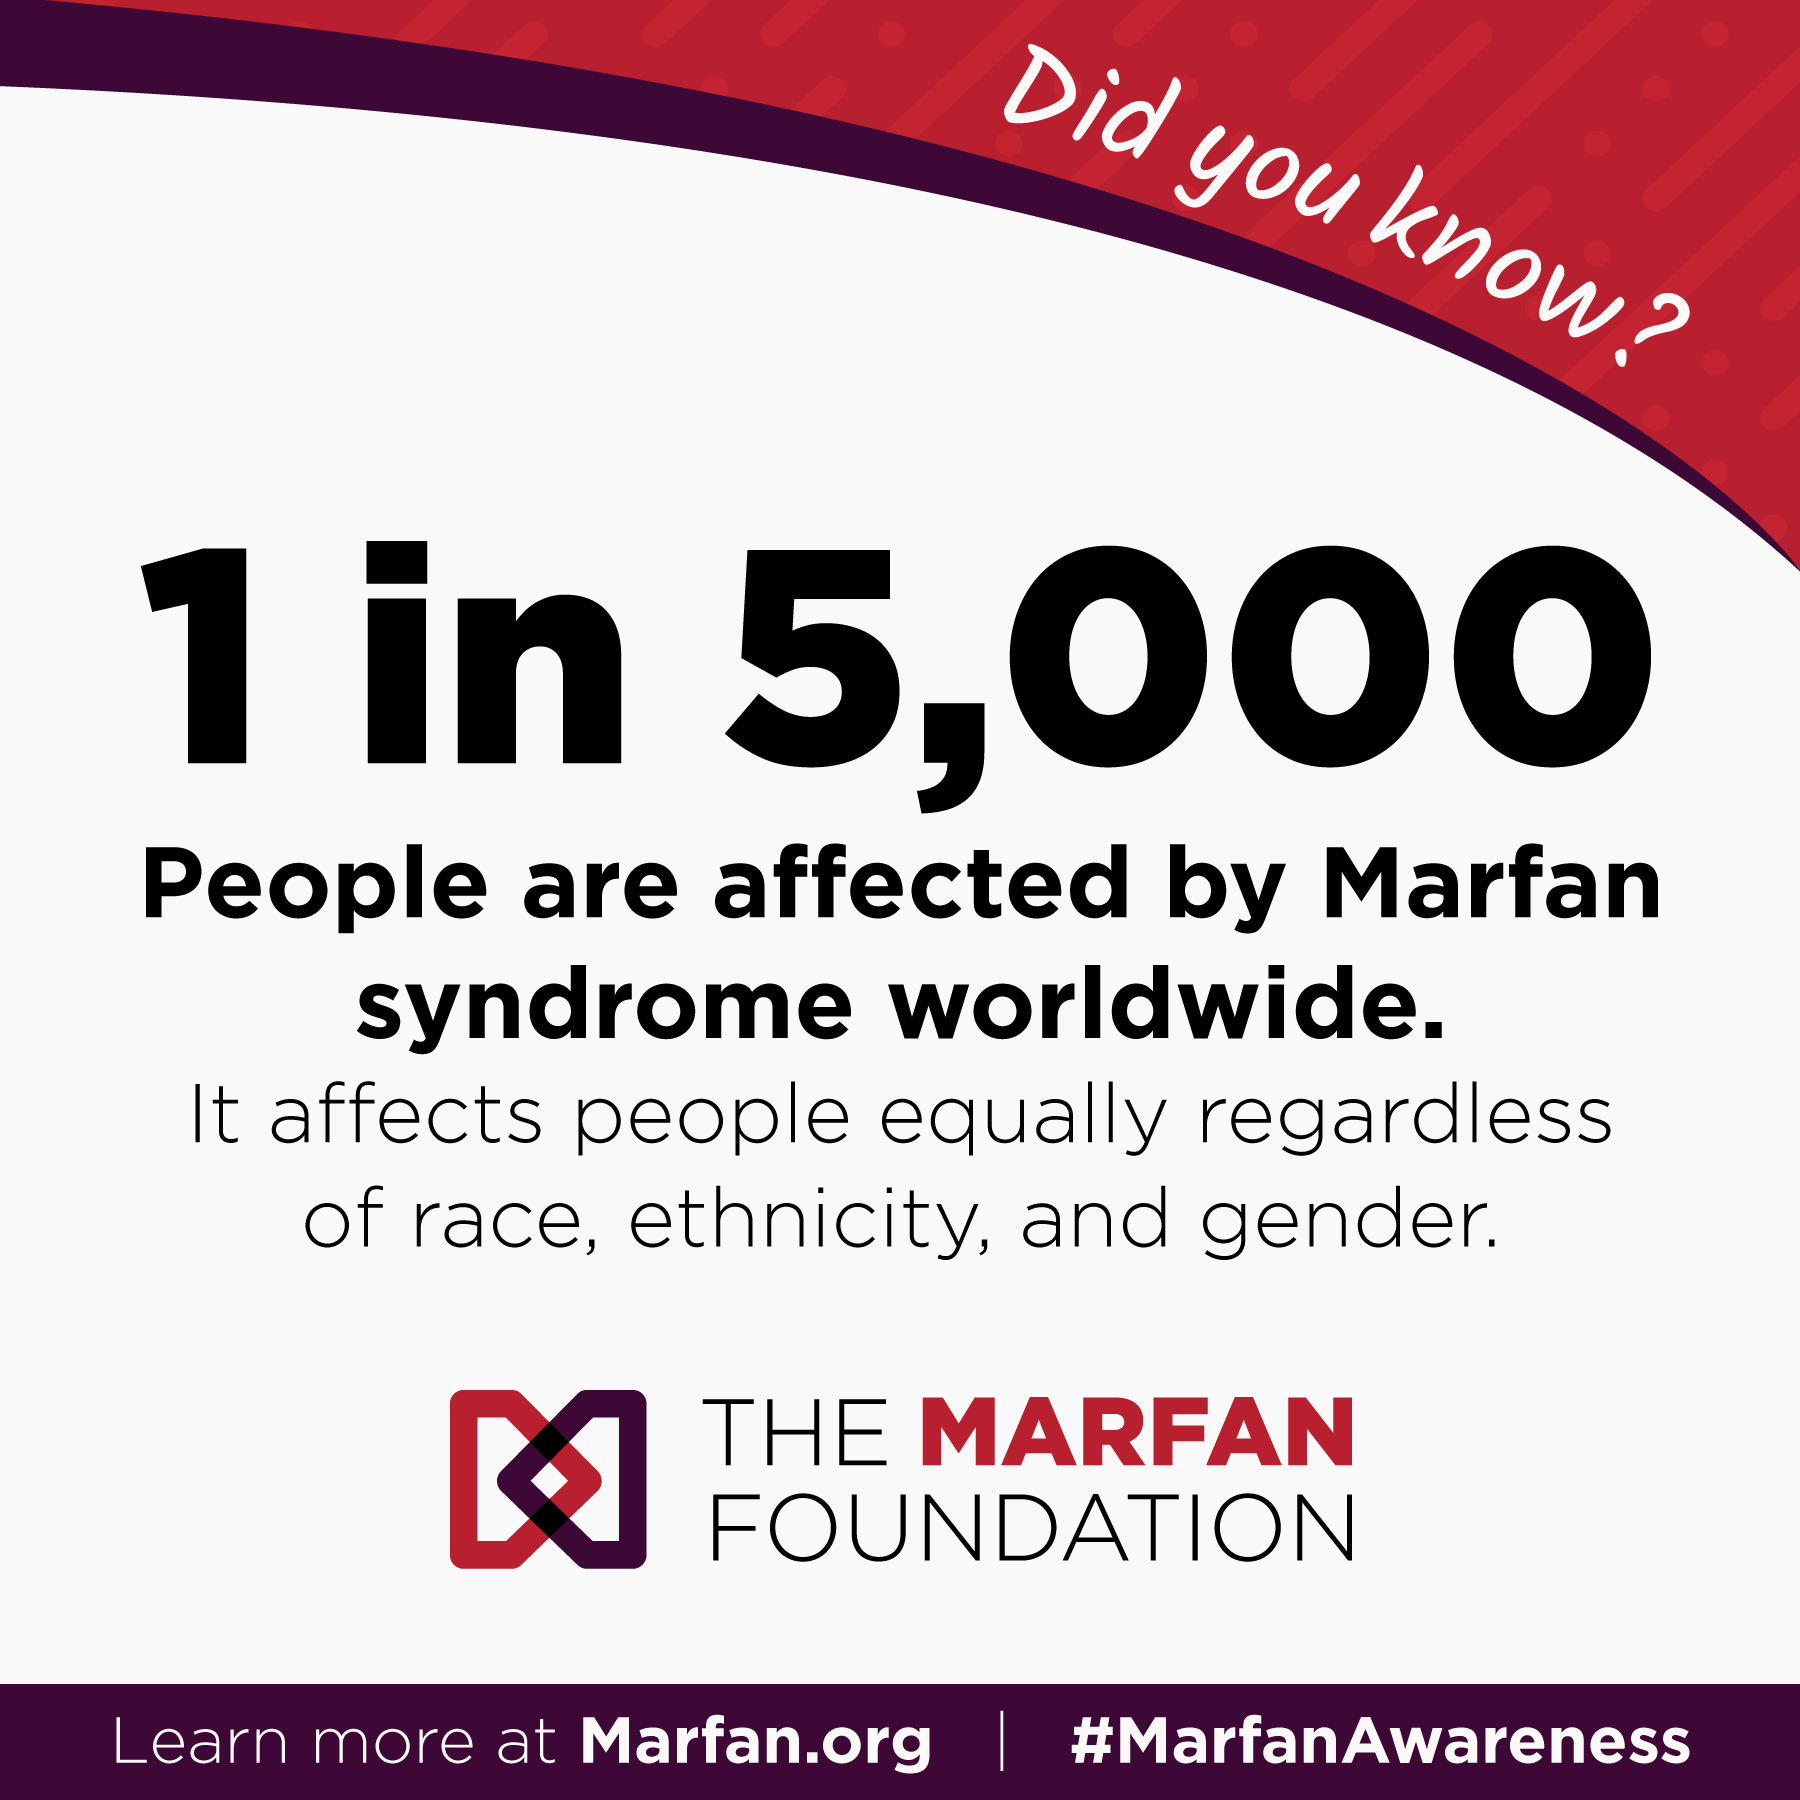 A graphic with a white background. In the top right hand corner over a read background text reads 'did you know'. Text on the rest of the graphic reads '1 in 5,000 people are affected by Marfan worldwide. It affects people equally regardless of race, ethnicity, and gender. The marfan foundation. Learn more at marfan.org #MarfanAwareness